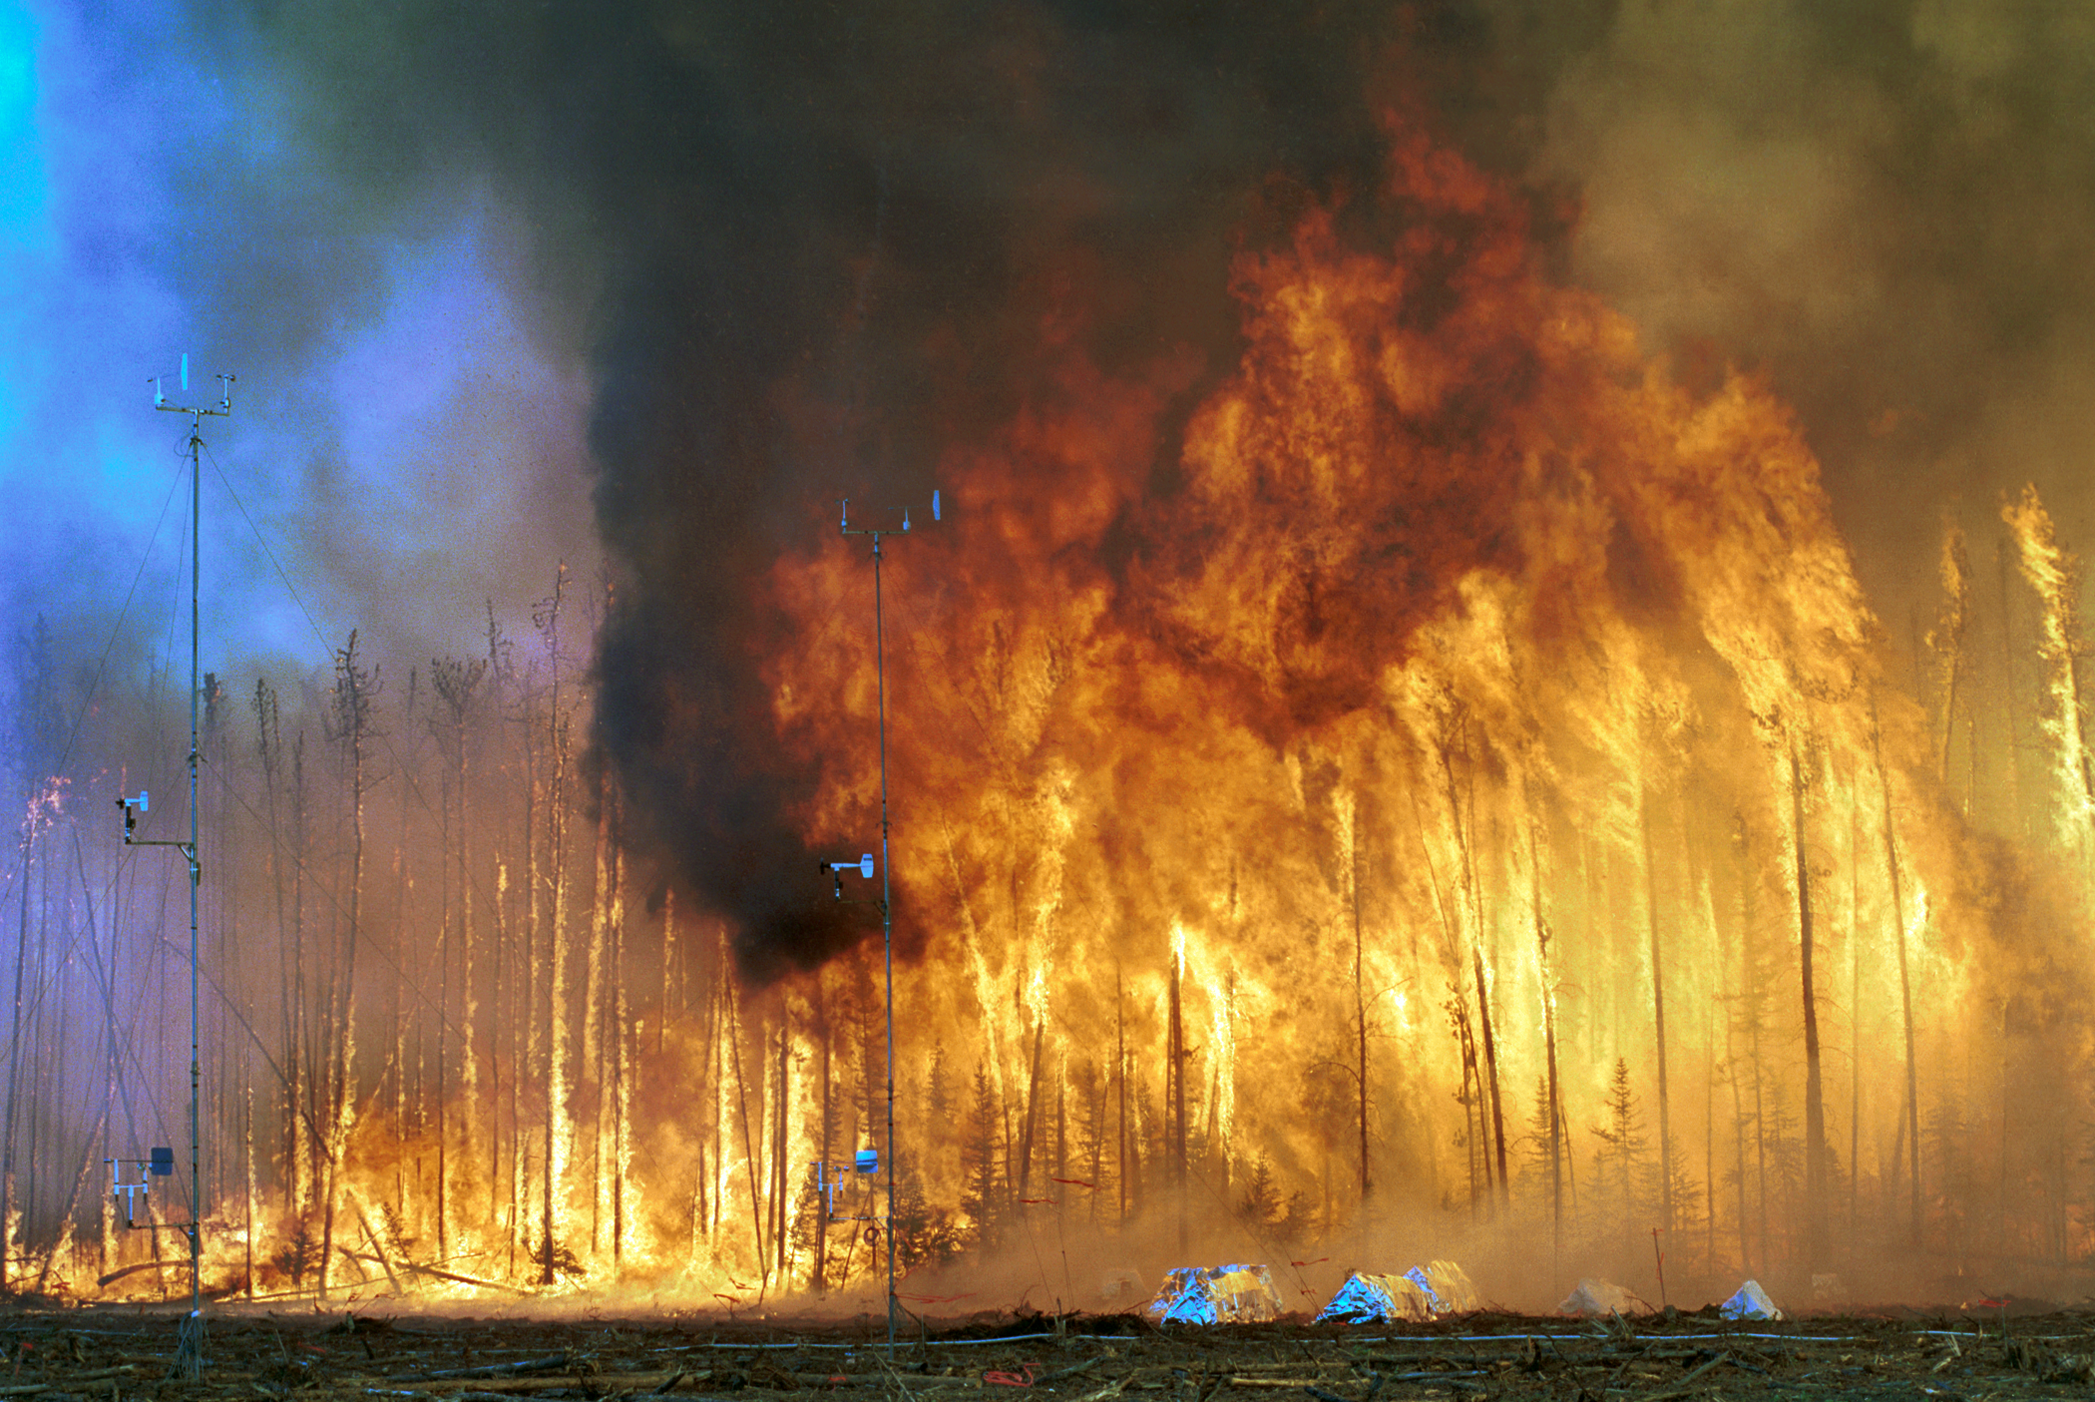 Northwest_Crown_Fire_Experiment.png (2095×1402)